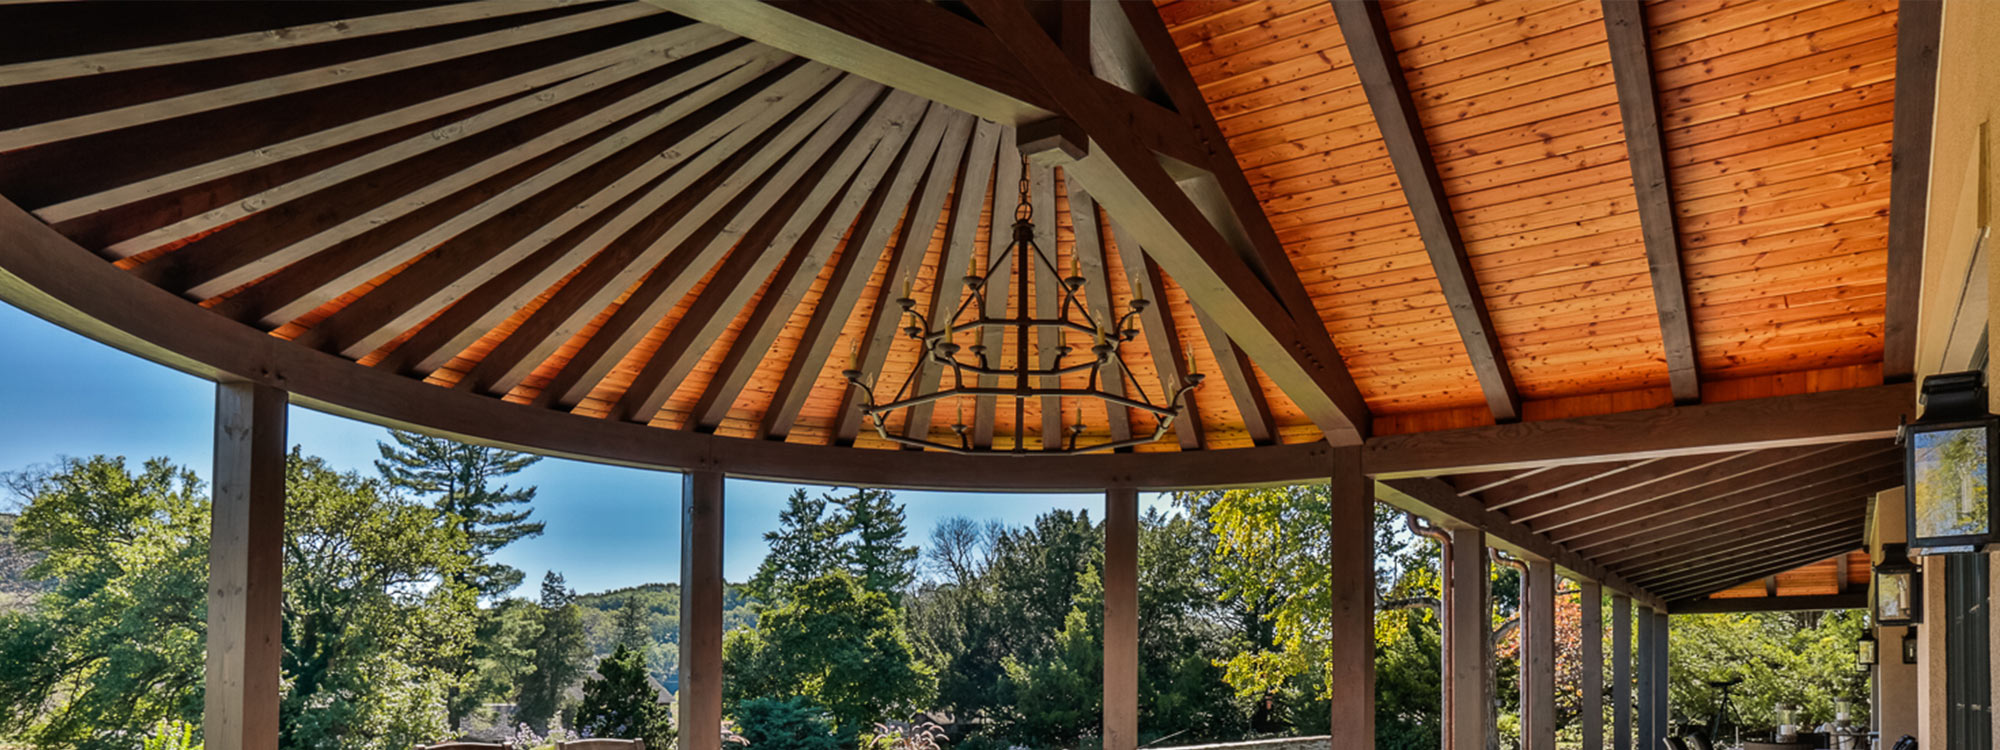 Learn more about Mid-Atlantic Timberframes timber frame pergolas and pavilions